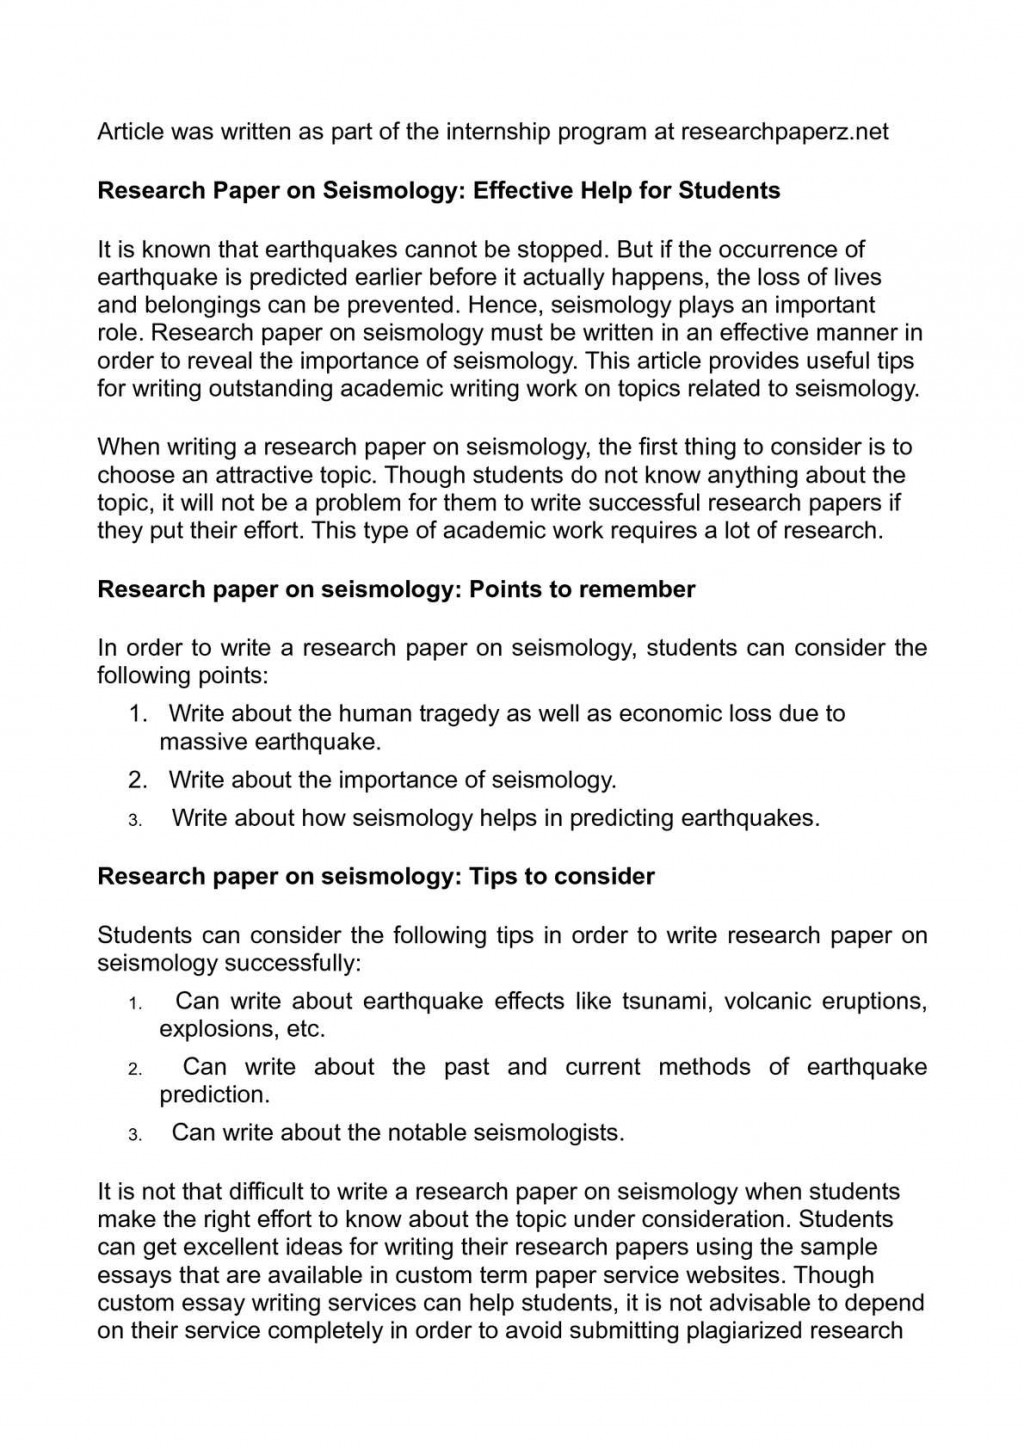 006 Research Paper Order Of Writing Impressive A Correct Sequence Steps For Large